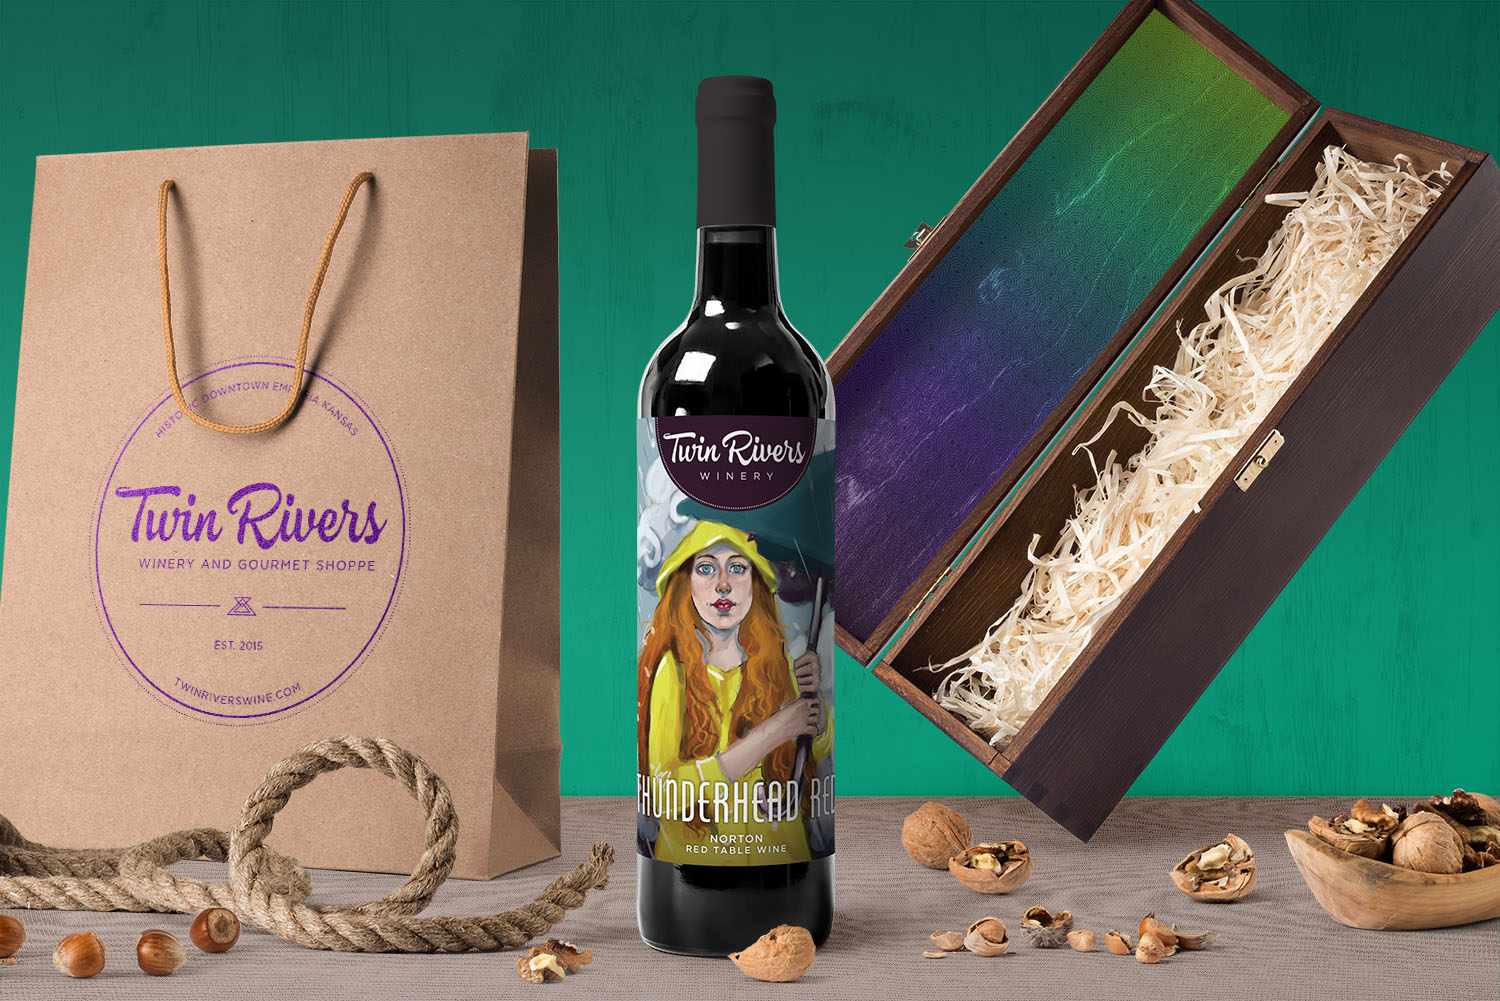 Twin Rivers Winery Brand Identity